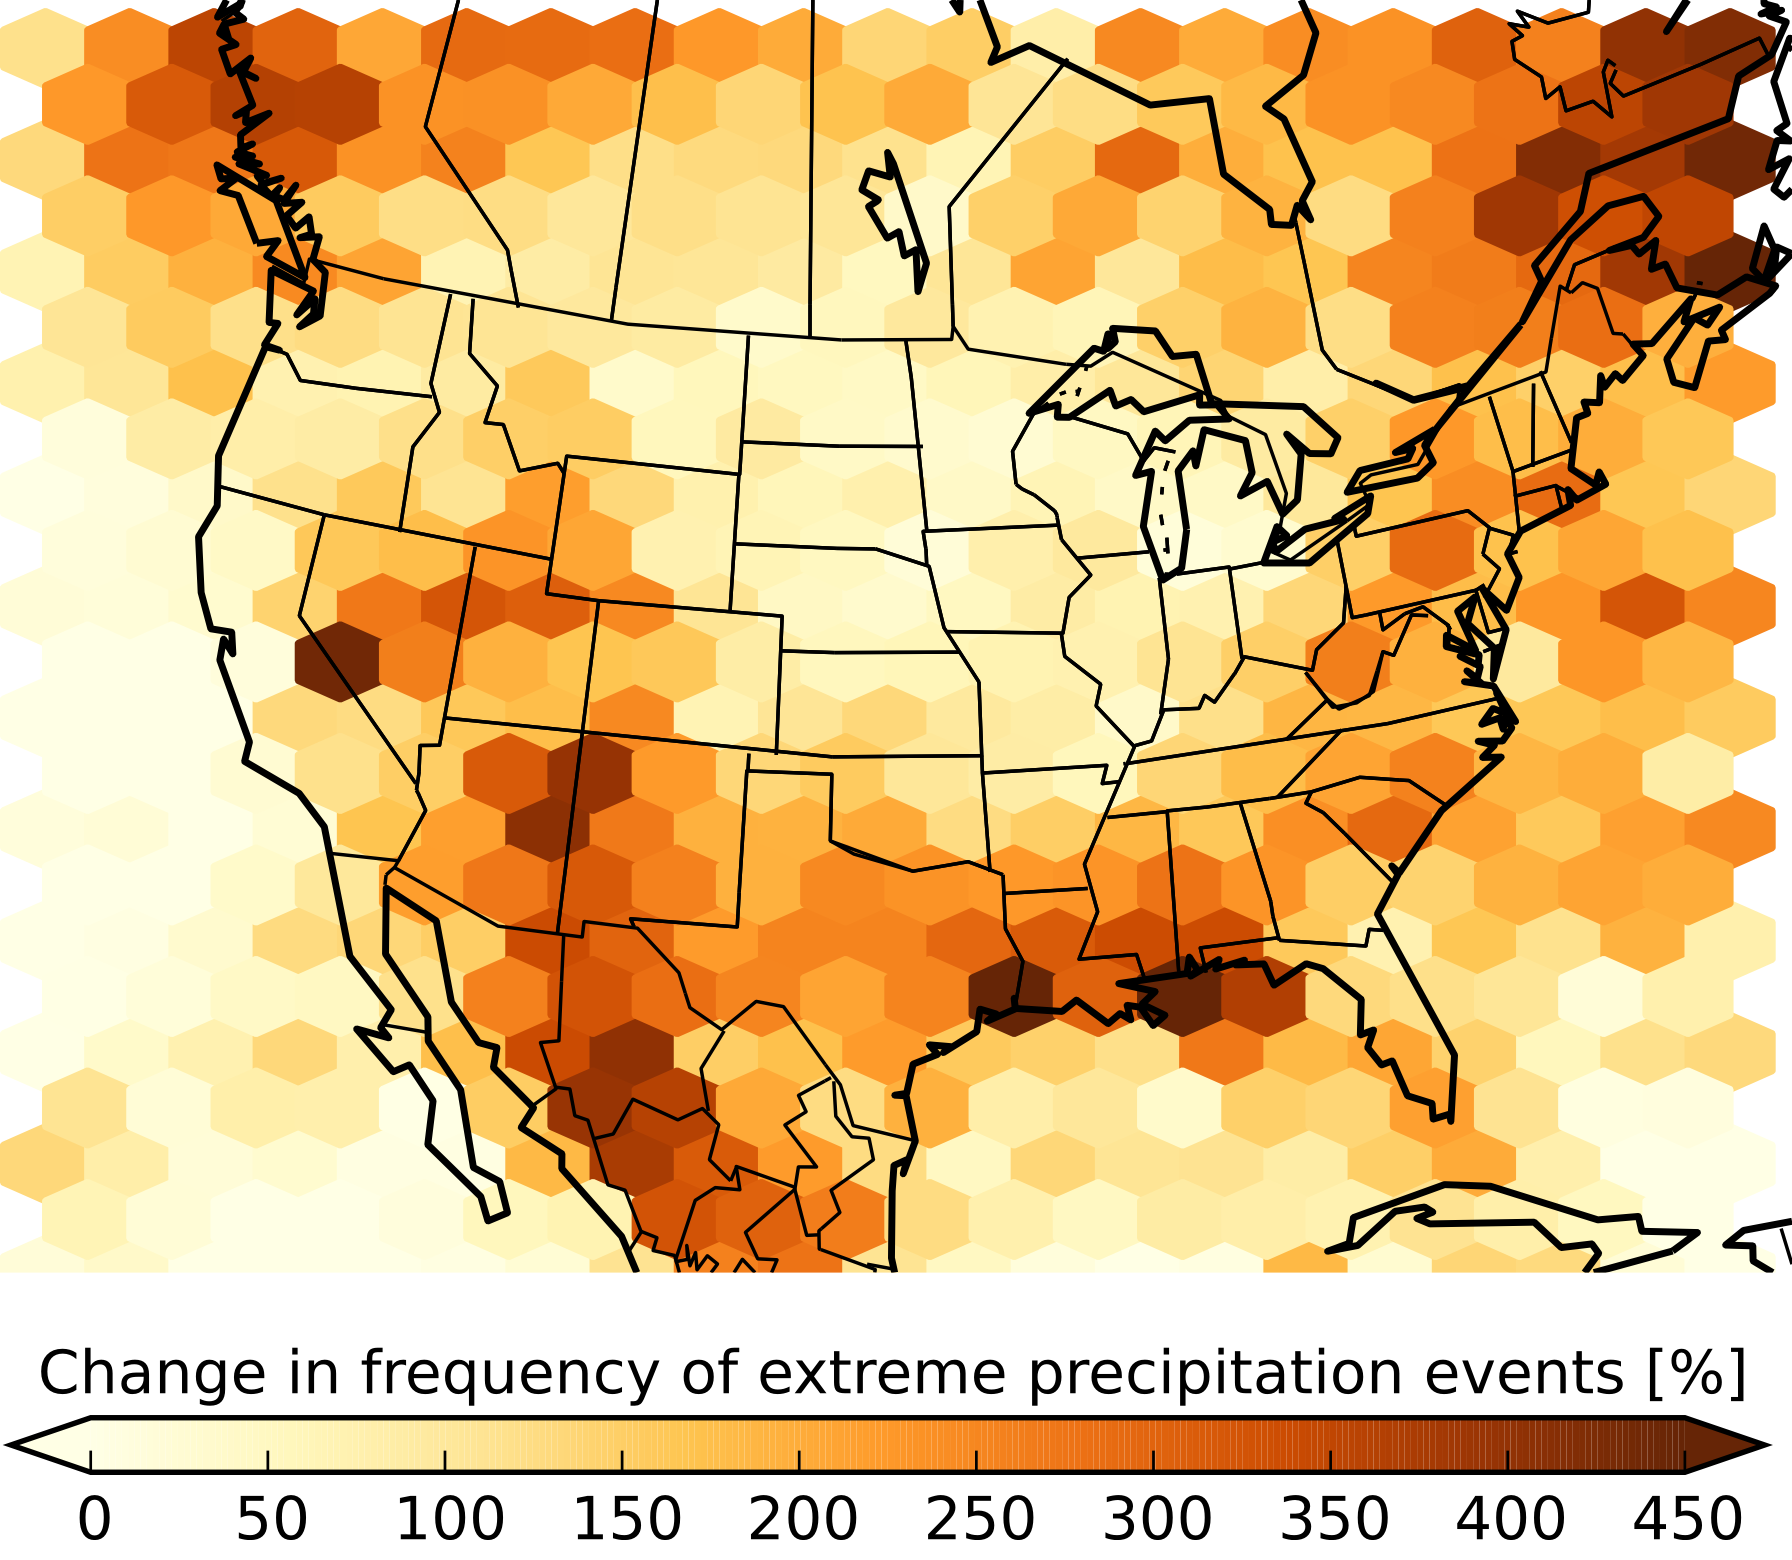 Image illustrating increase in extreme precipitation events